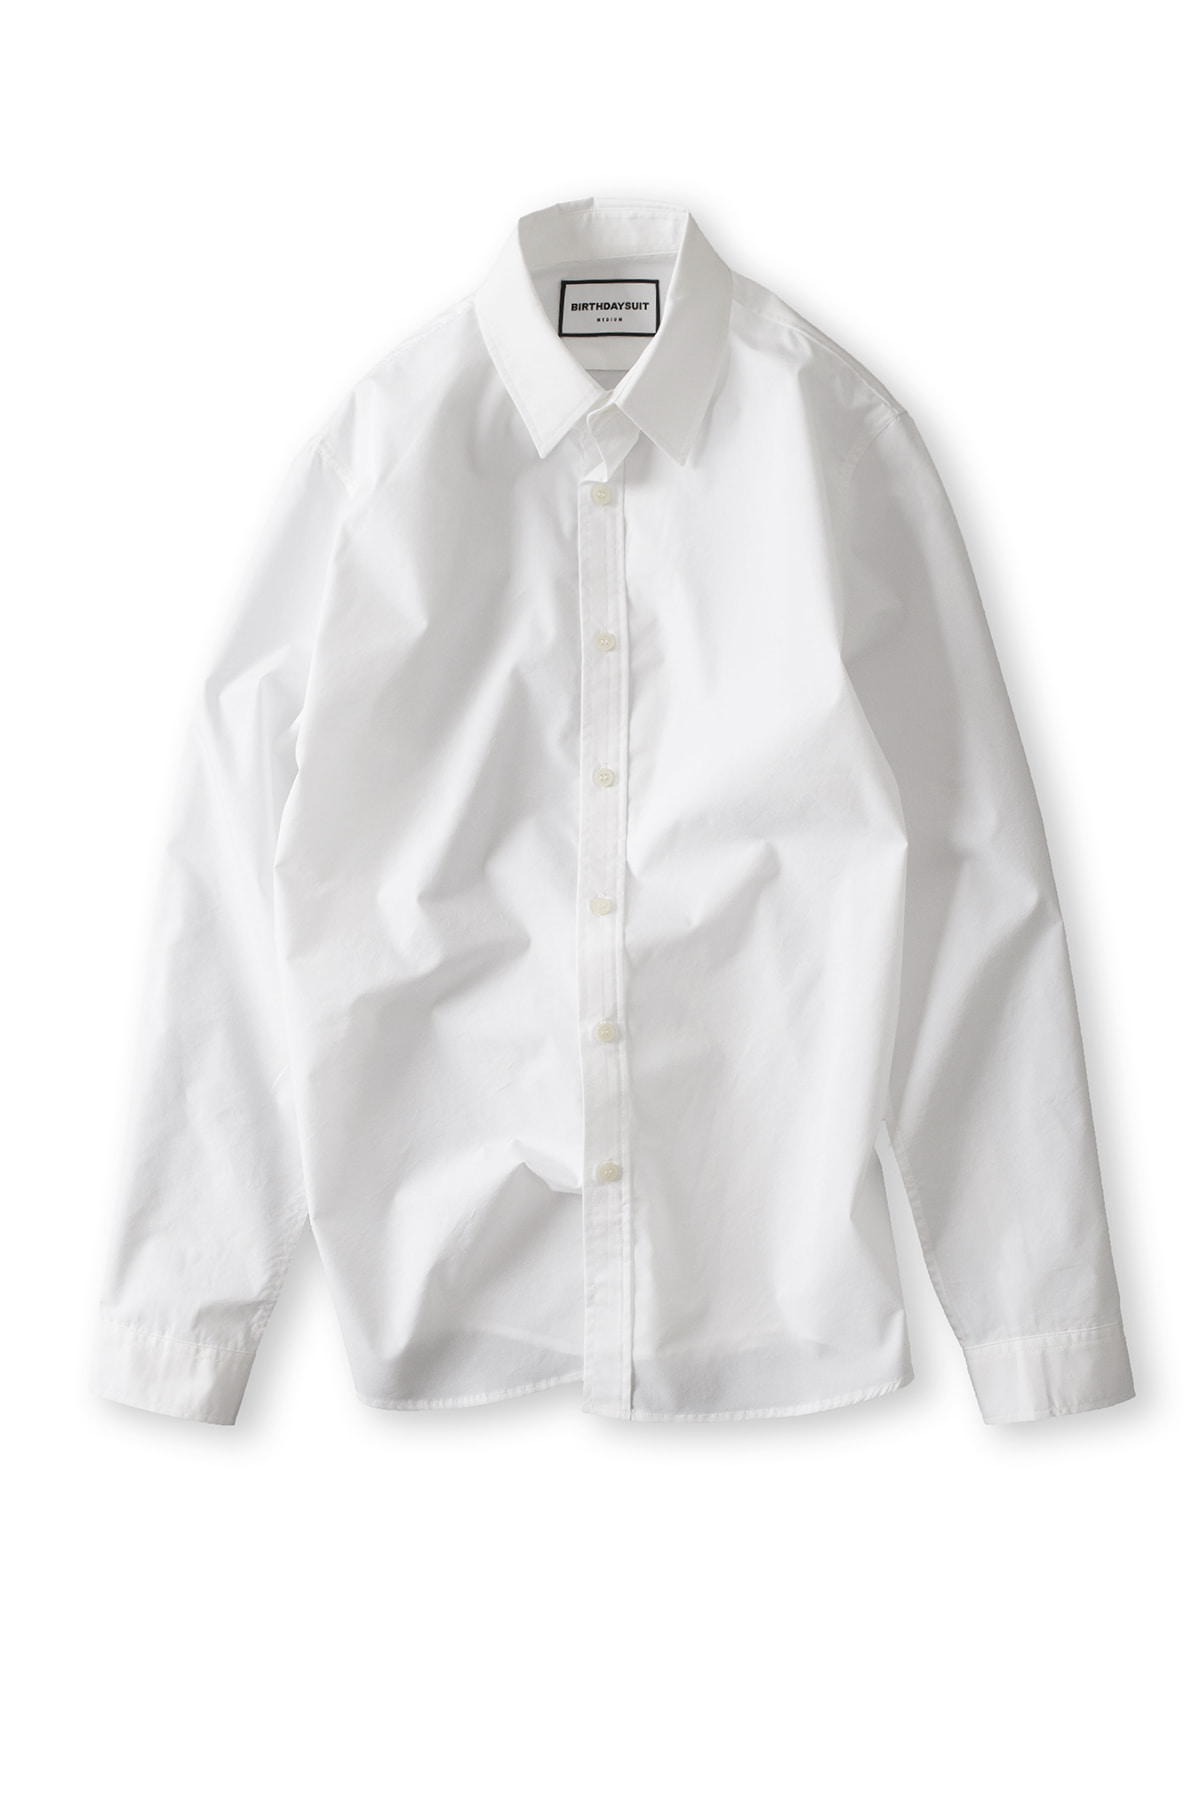 BIRTHDAYSUIT : Basic Shirt (Pure White)